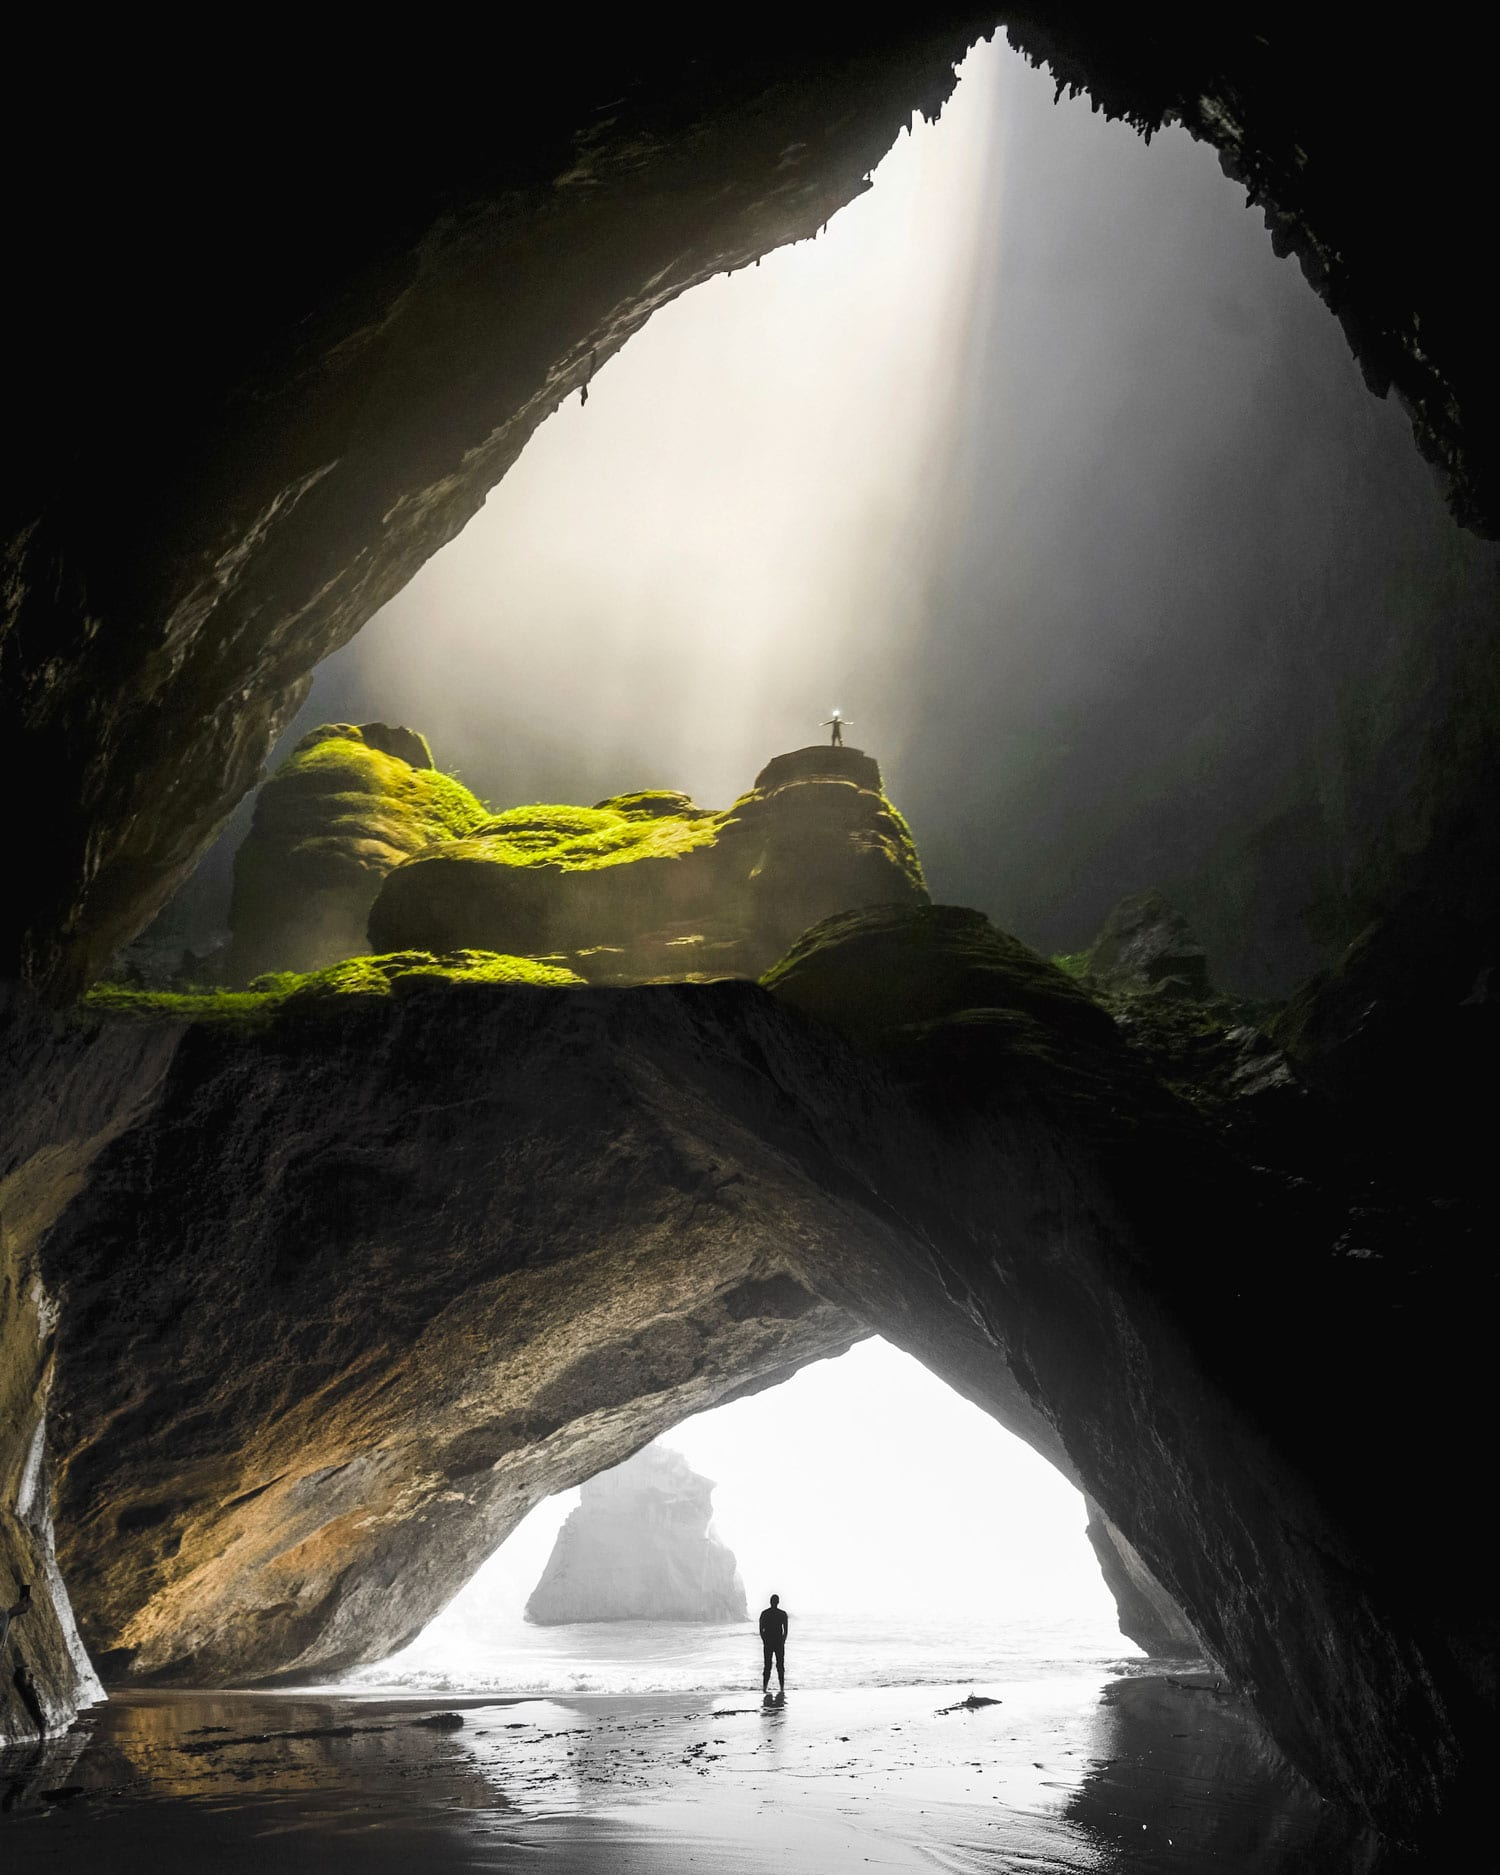 Surreal Digital Art by Justin Peters | Yellowtrace